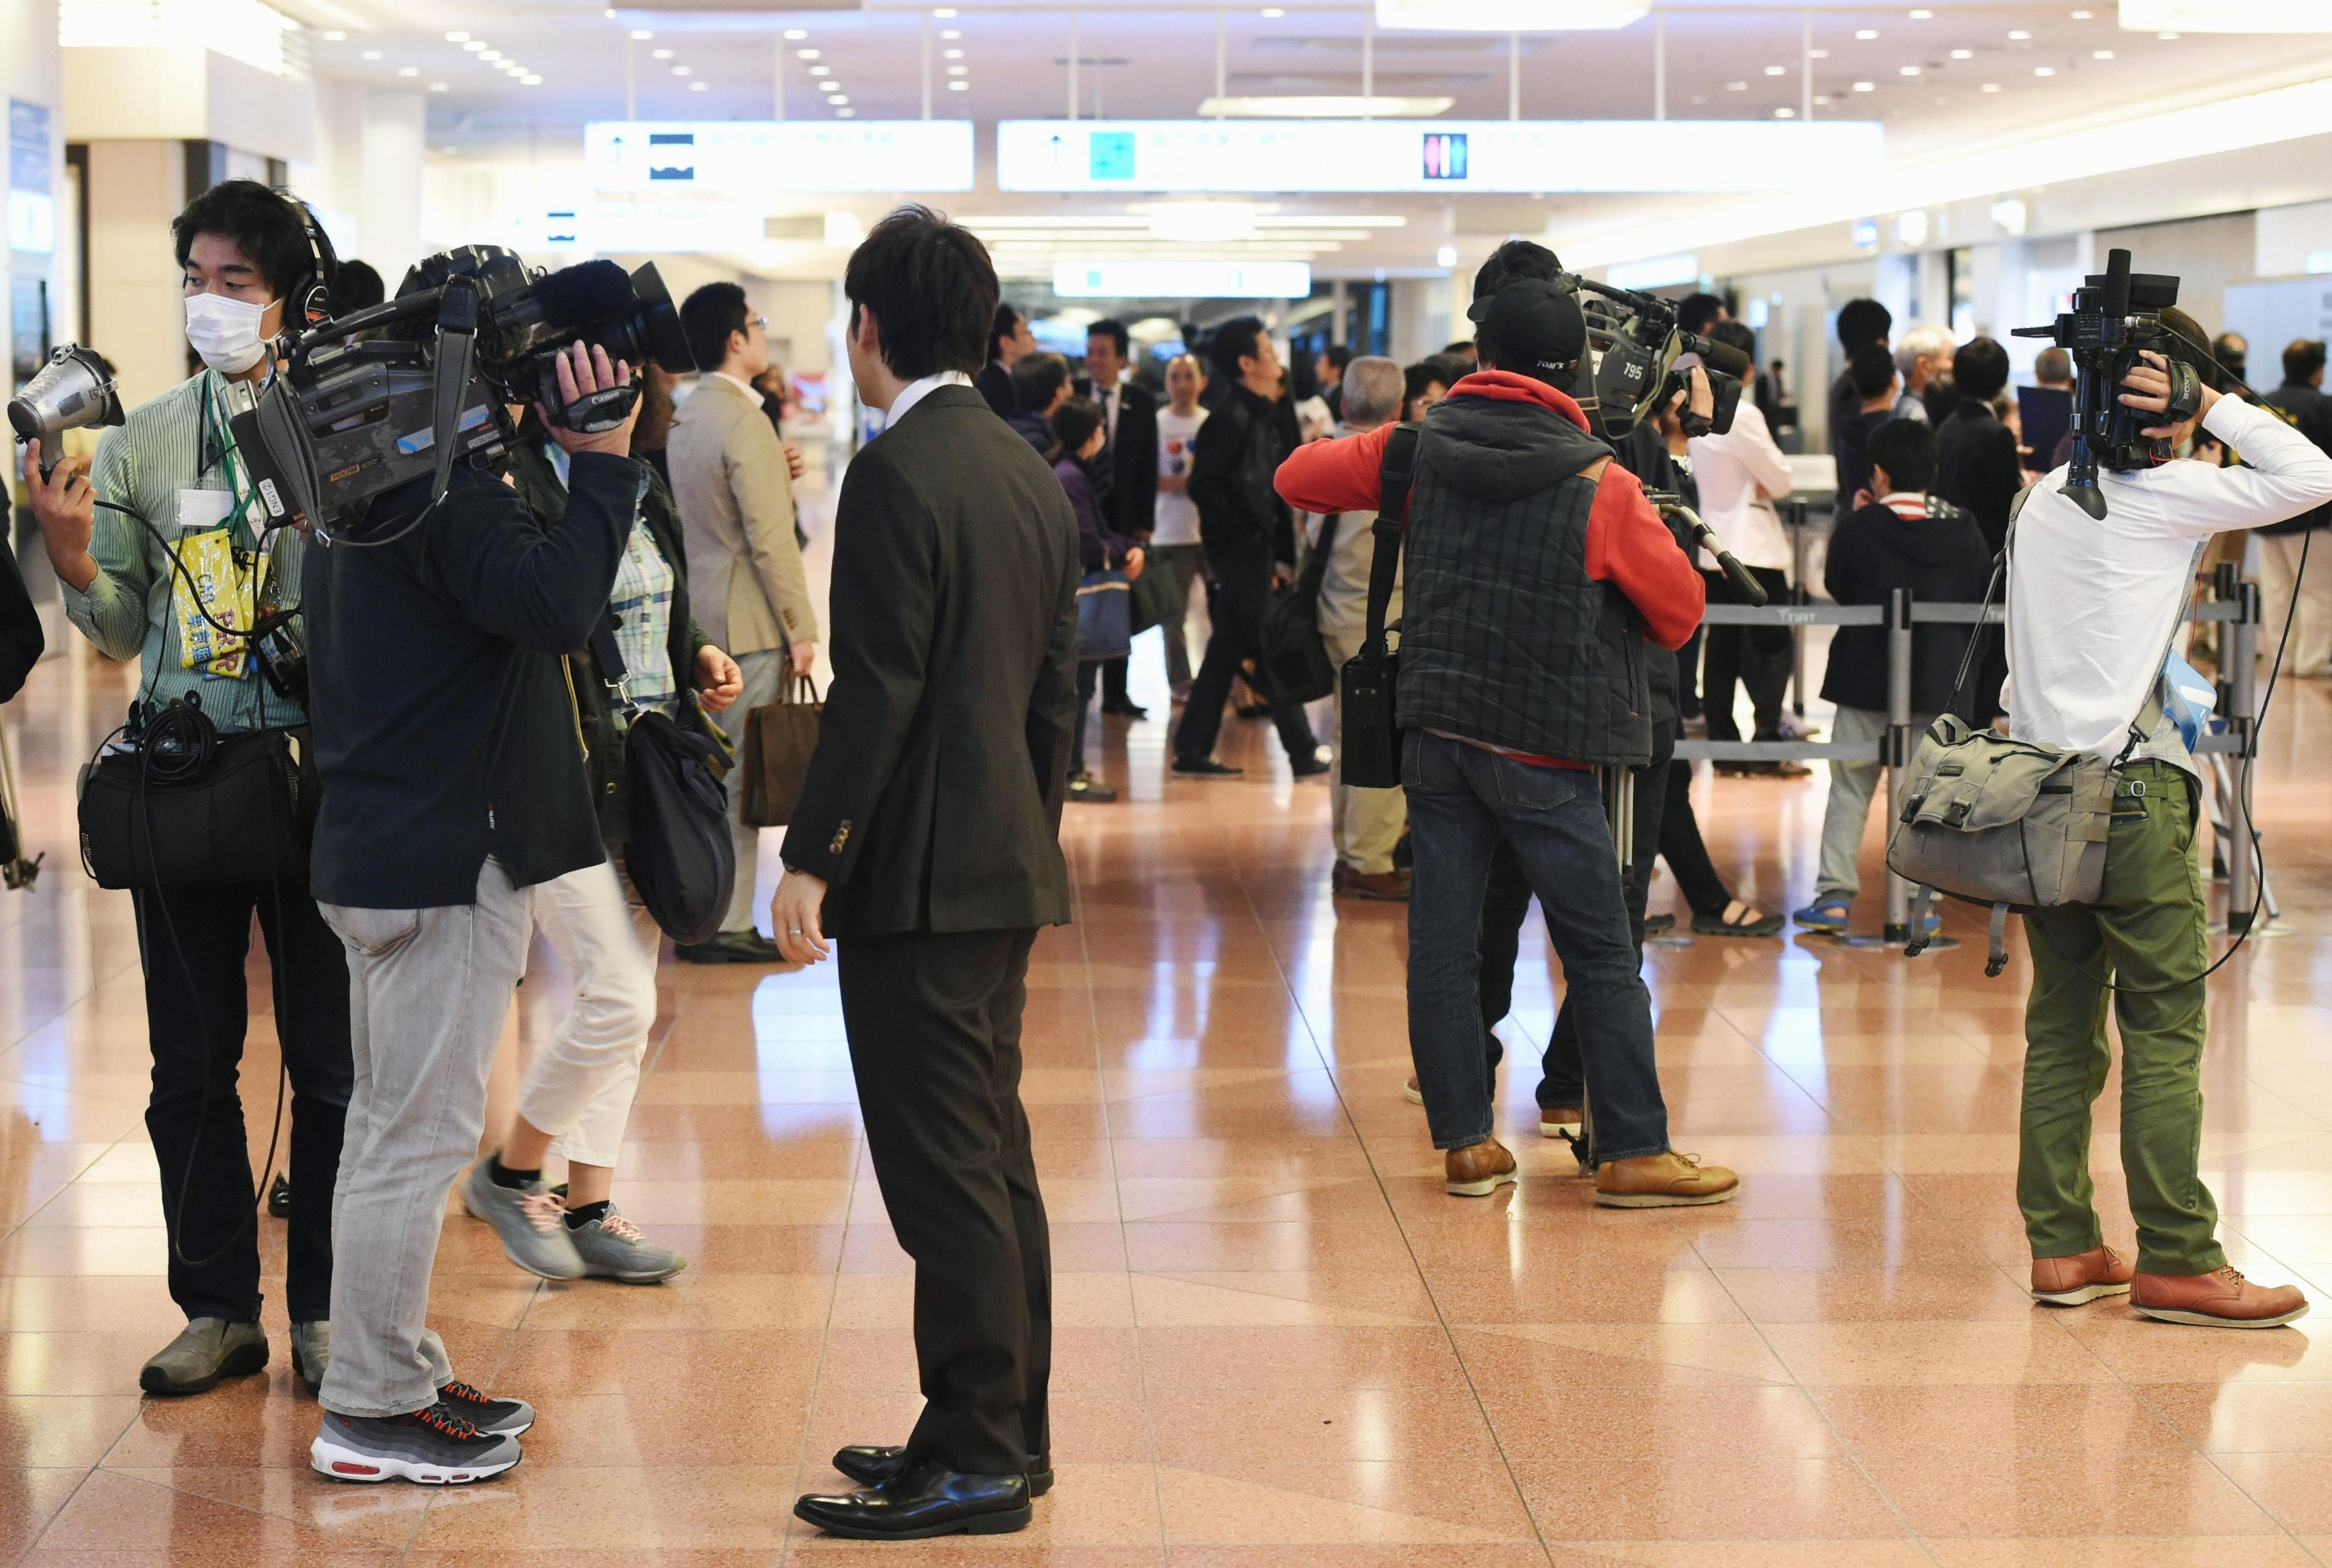 Journalists gather in an arrival lobby at Tokyo's Haneda airport Monday night. | KYODO